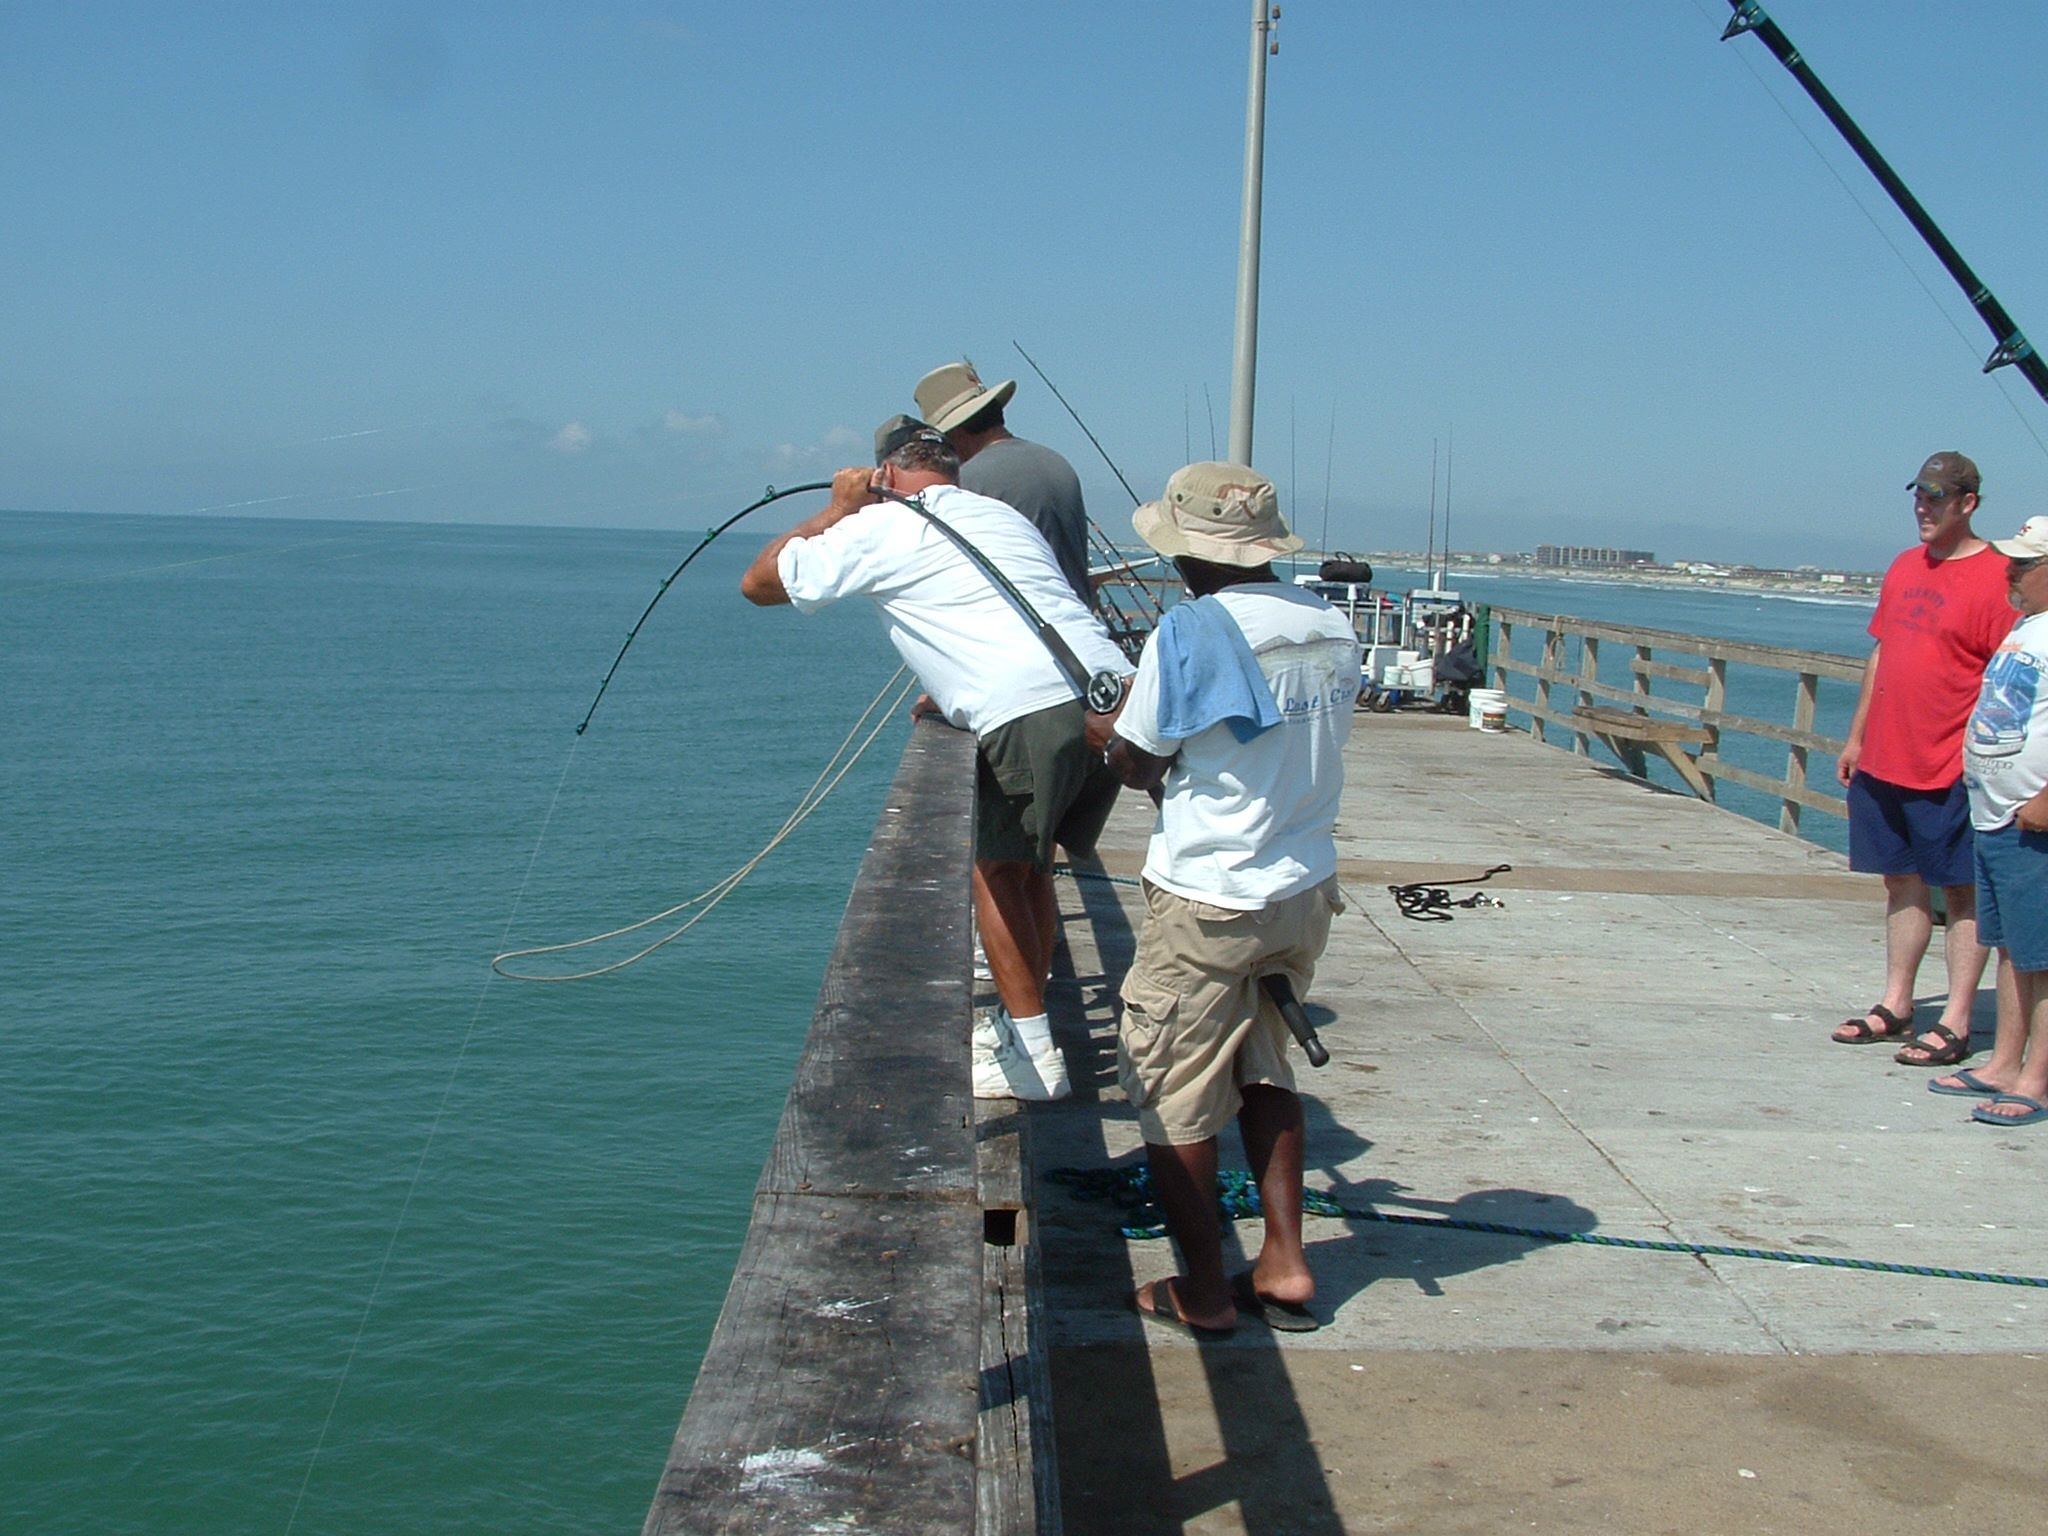 Hook and line fishing is allowed from Horace Caldwell Pier in I.B. Magee Park on the northernmost tip of Mustang Island. The popular Nueces County park offers 75 campsites and a beautiful stretch of beach with restrooms, a bathhouse, and picnic tables. Courtesy photo